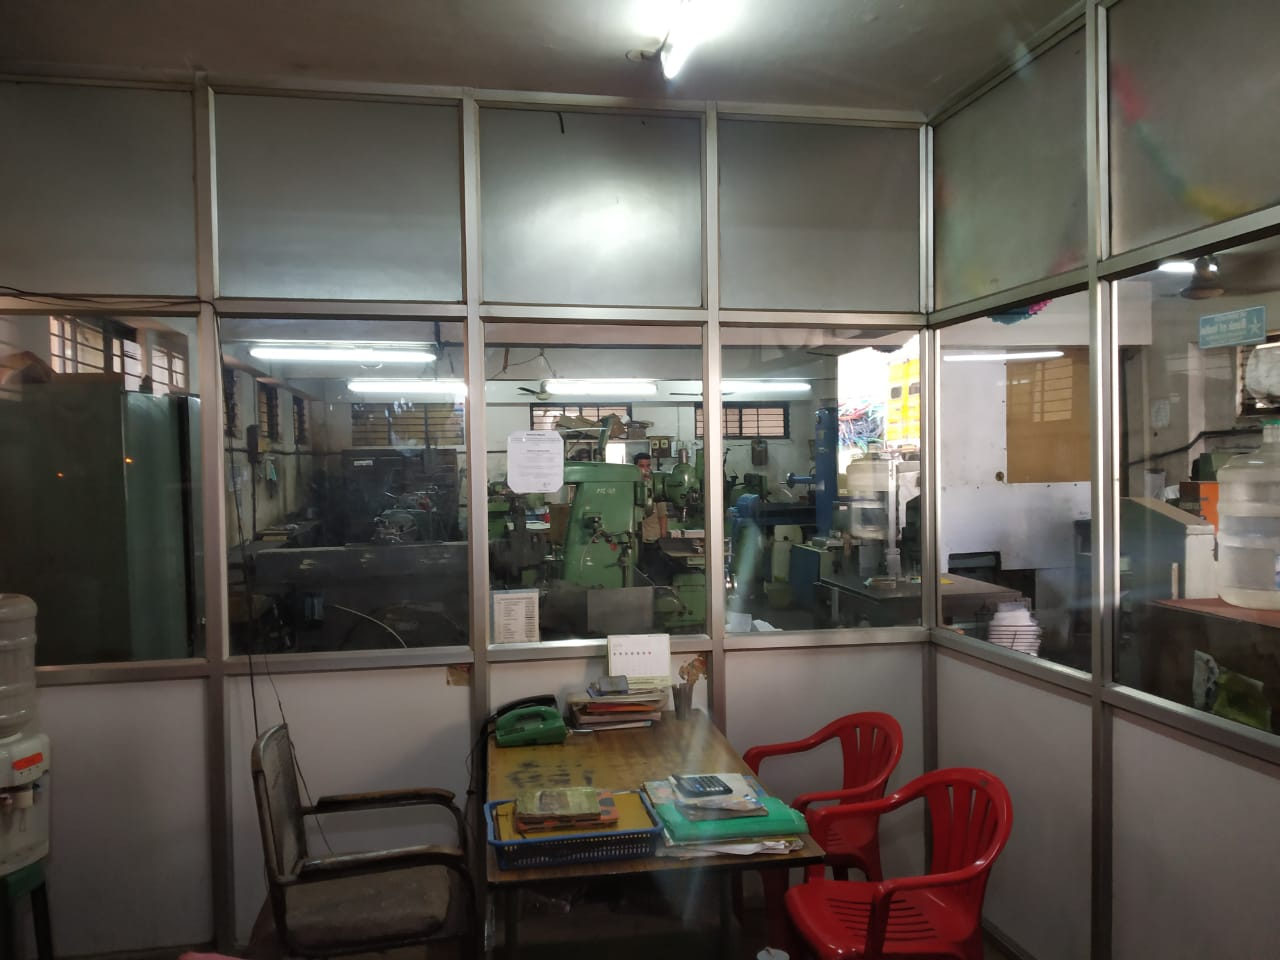 High Precision Machined Products Fabrication Business for Sale in Bangalore